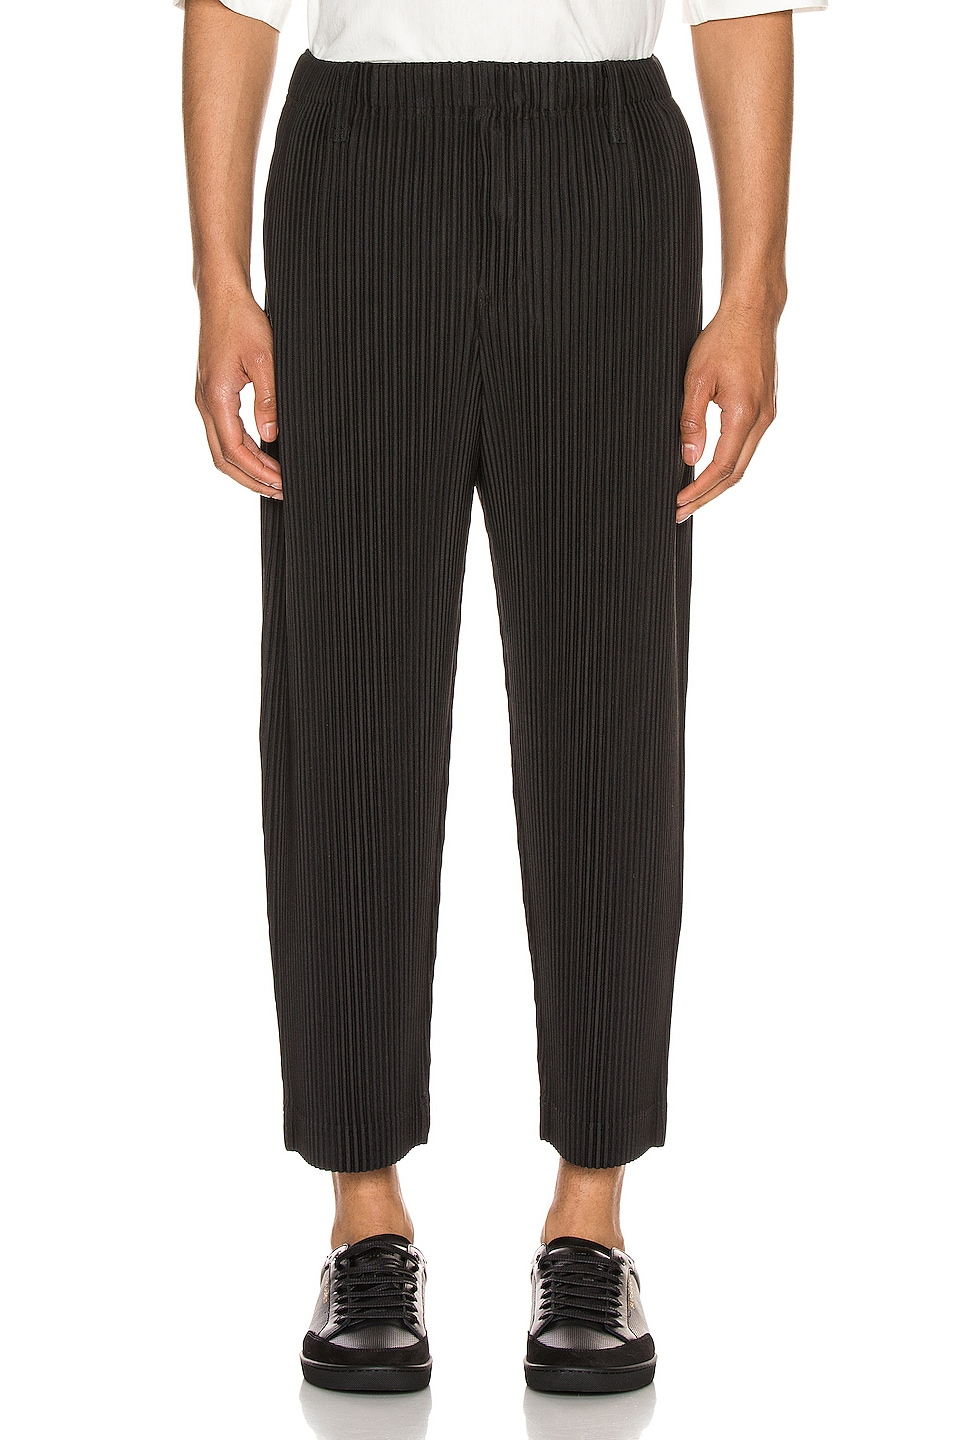 Image 1 of Issey Miyake Homme Plisse Tailored Pleat Pant in Corks Gray